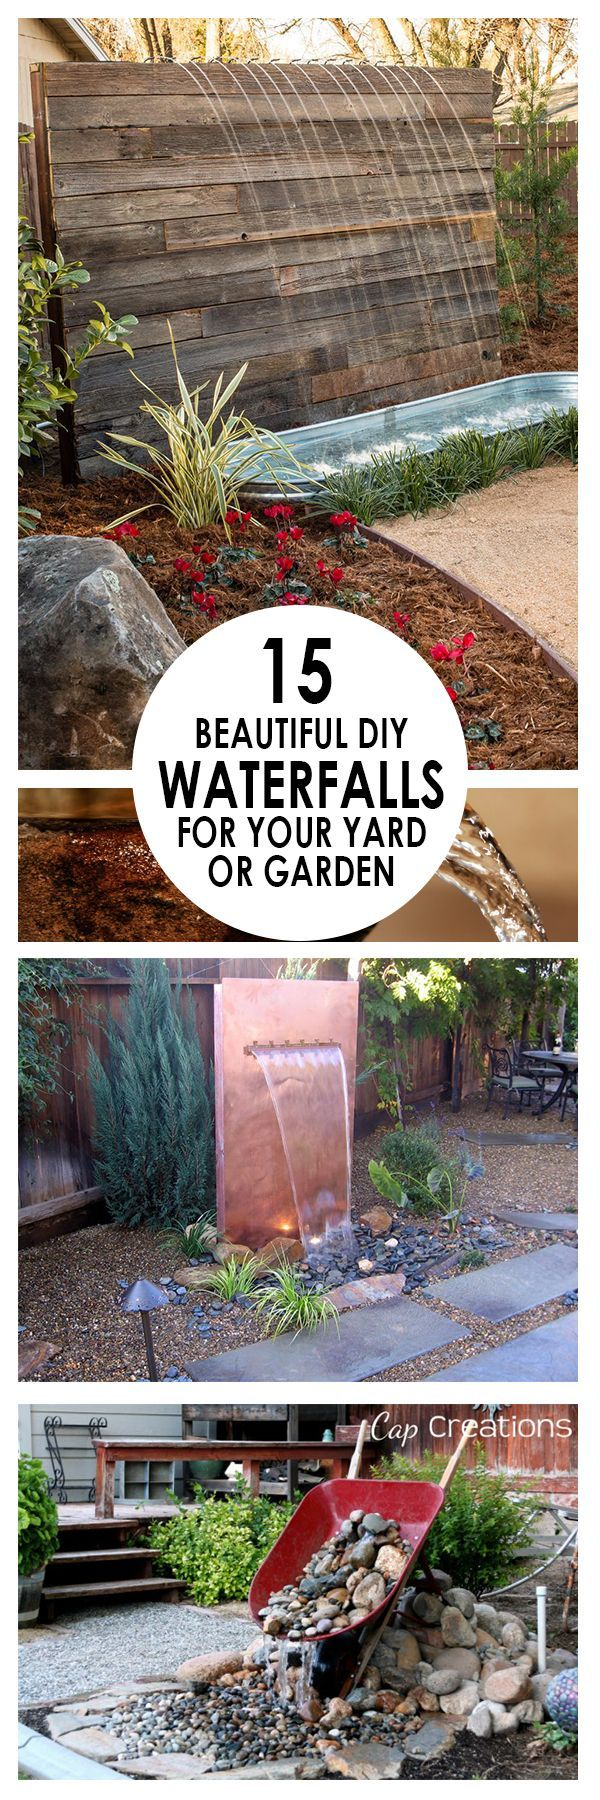 awesome 15 Beautiful DIY Waterfalls for Your